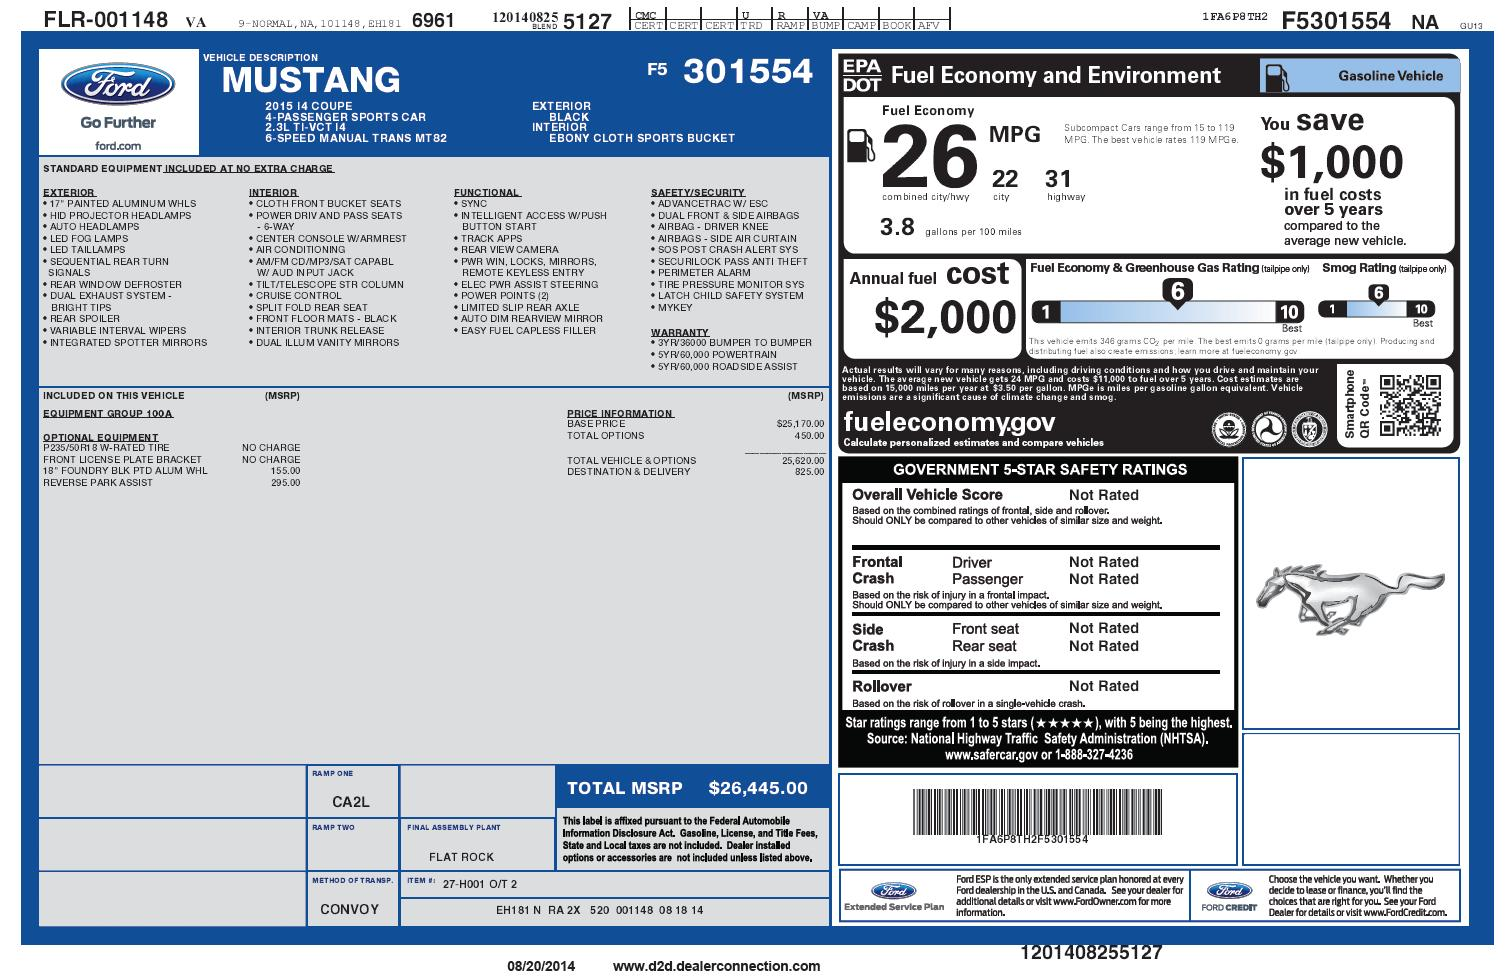 2015_Ford_Mustang_Coupe_I4_Manual_Sticker